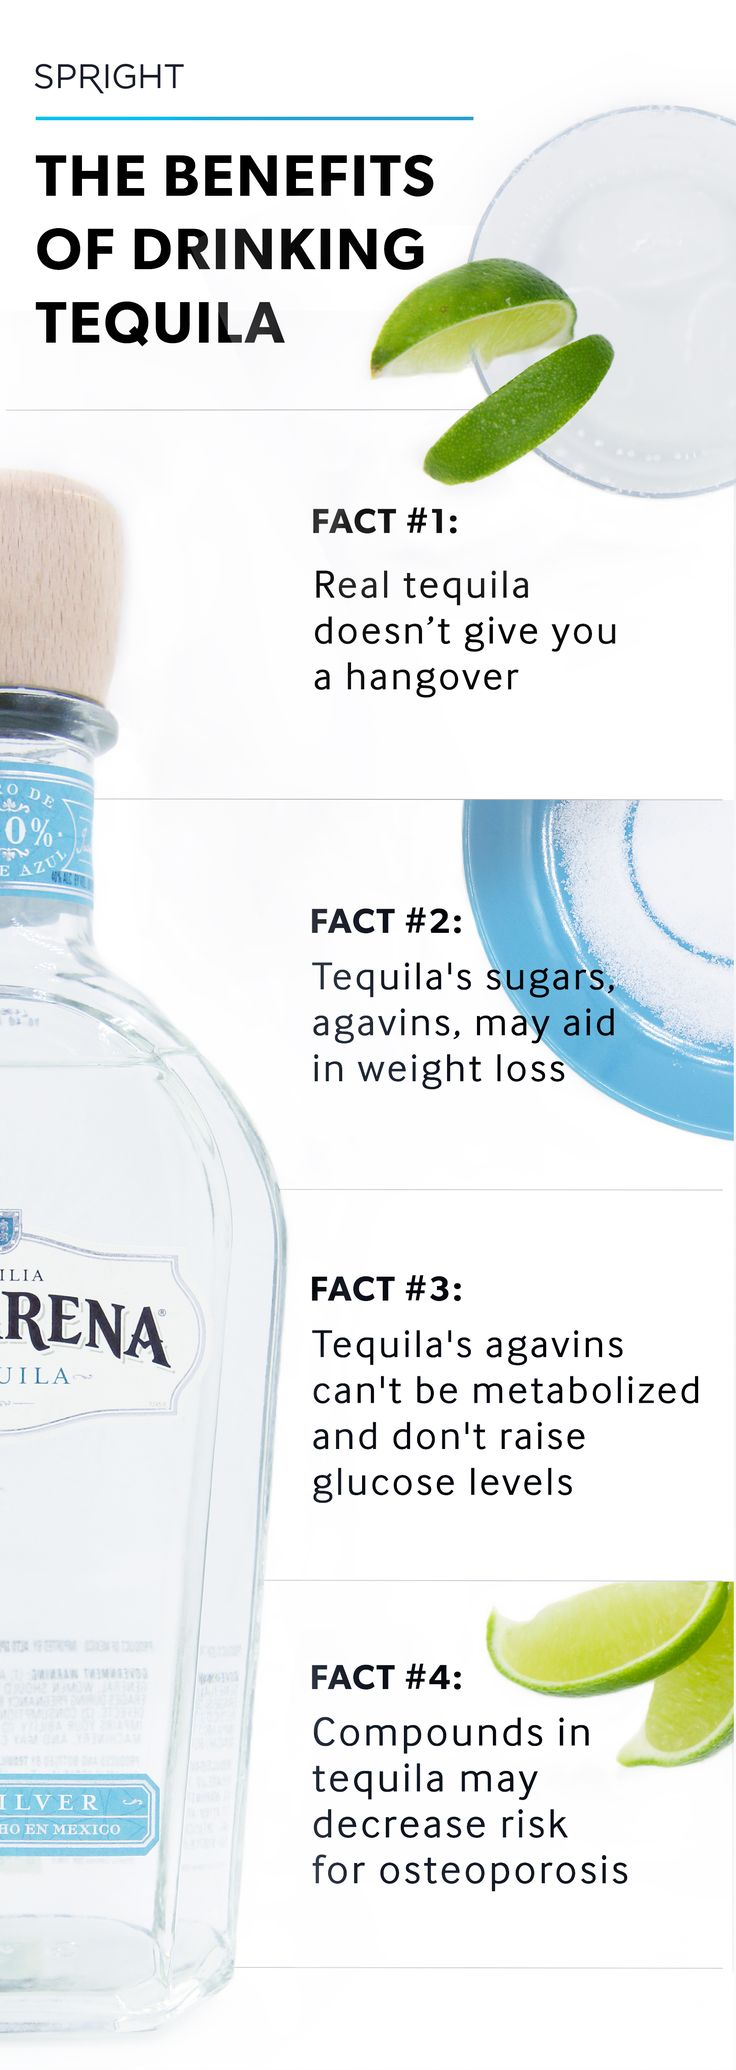 Tequila Facts from spright